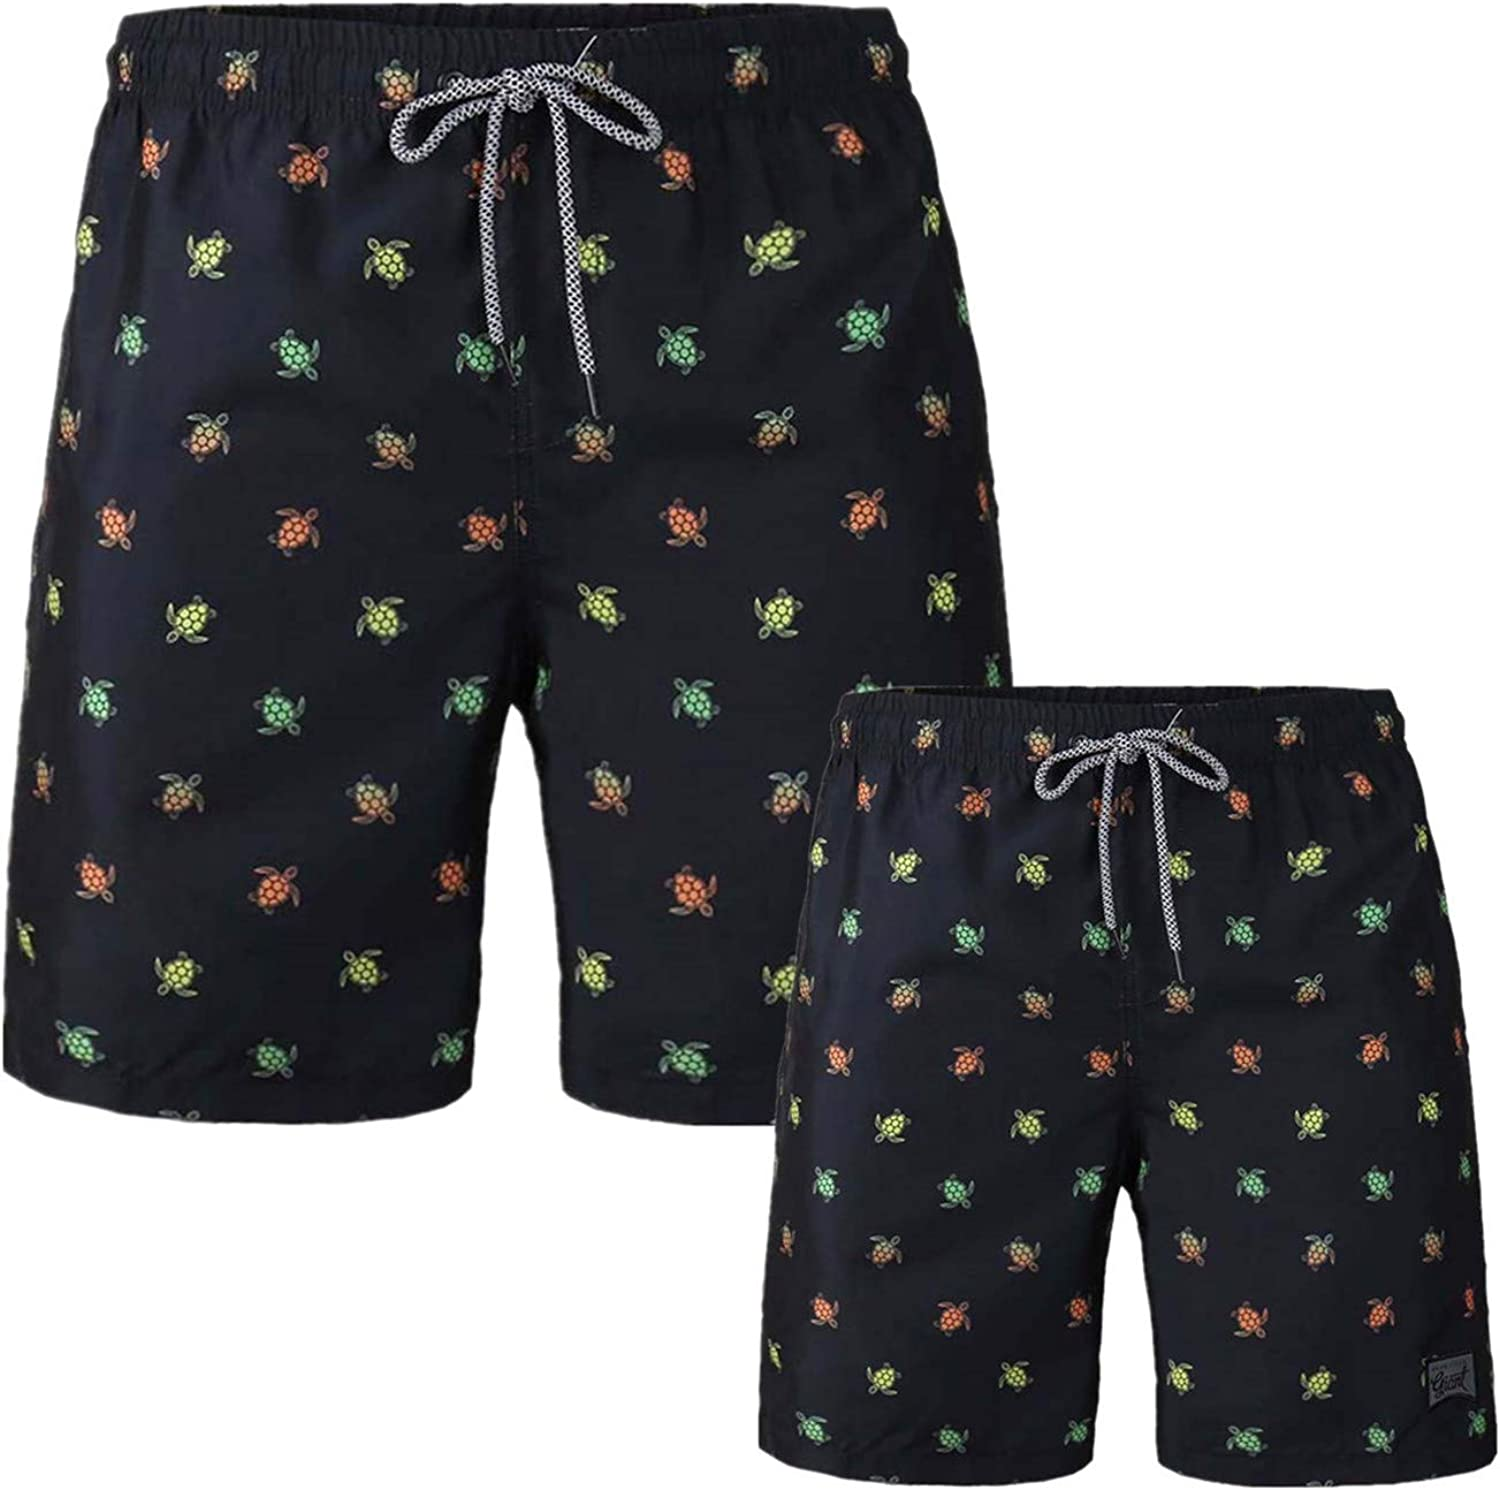 HURBE Father and BoysSwim Trunk Drawstring Surfing Fast Dry Vacation Underwear